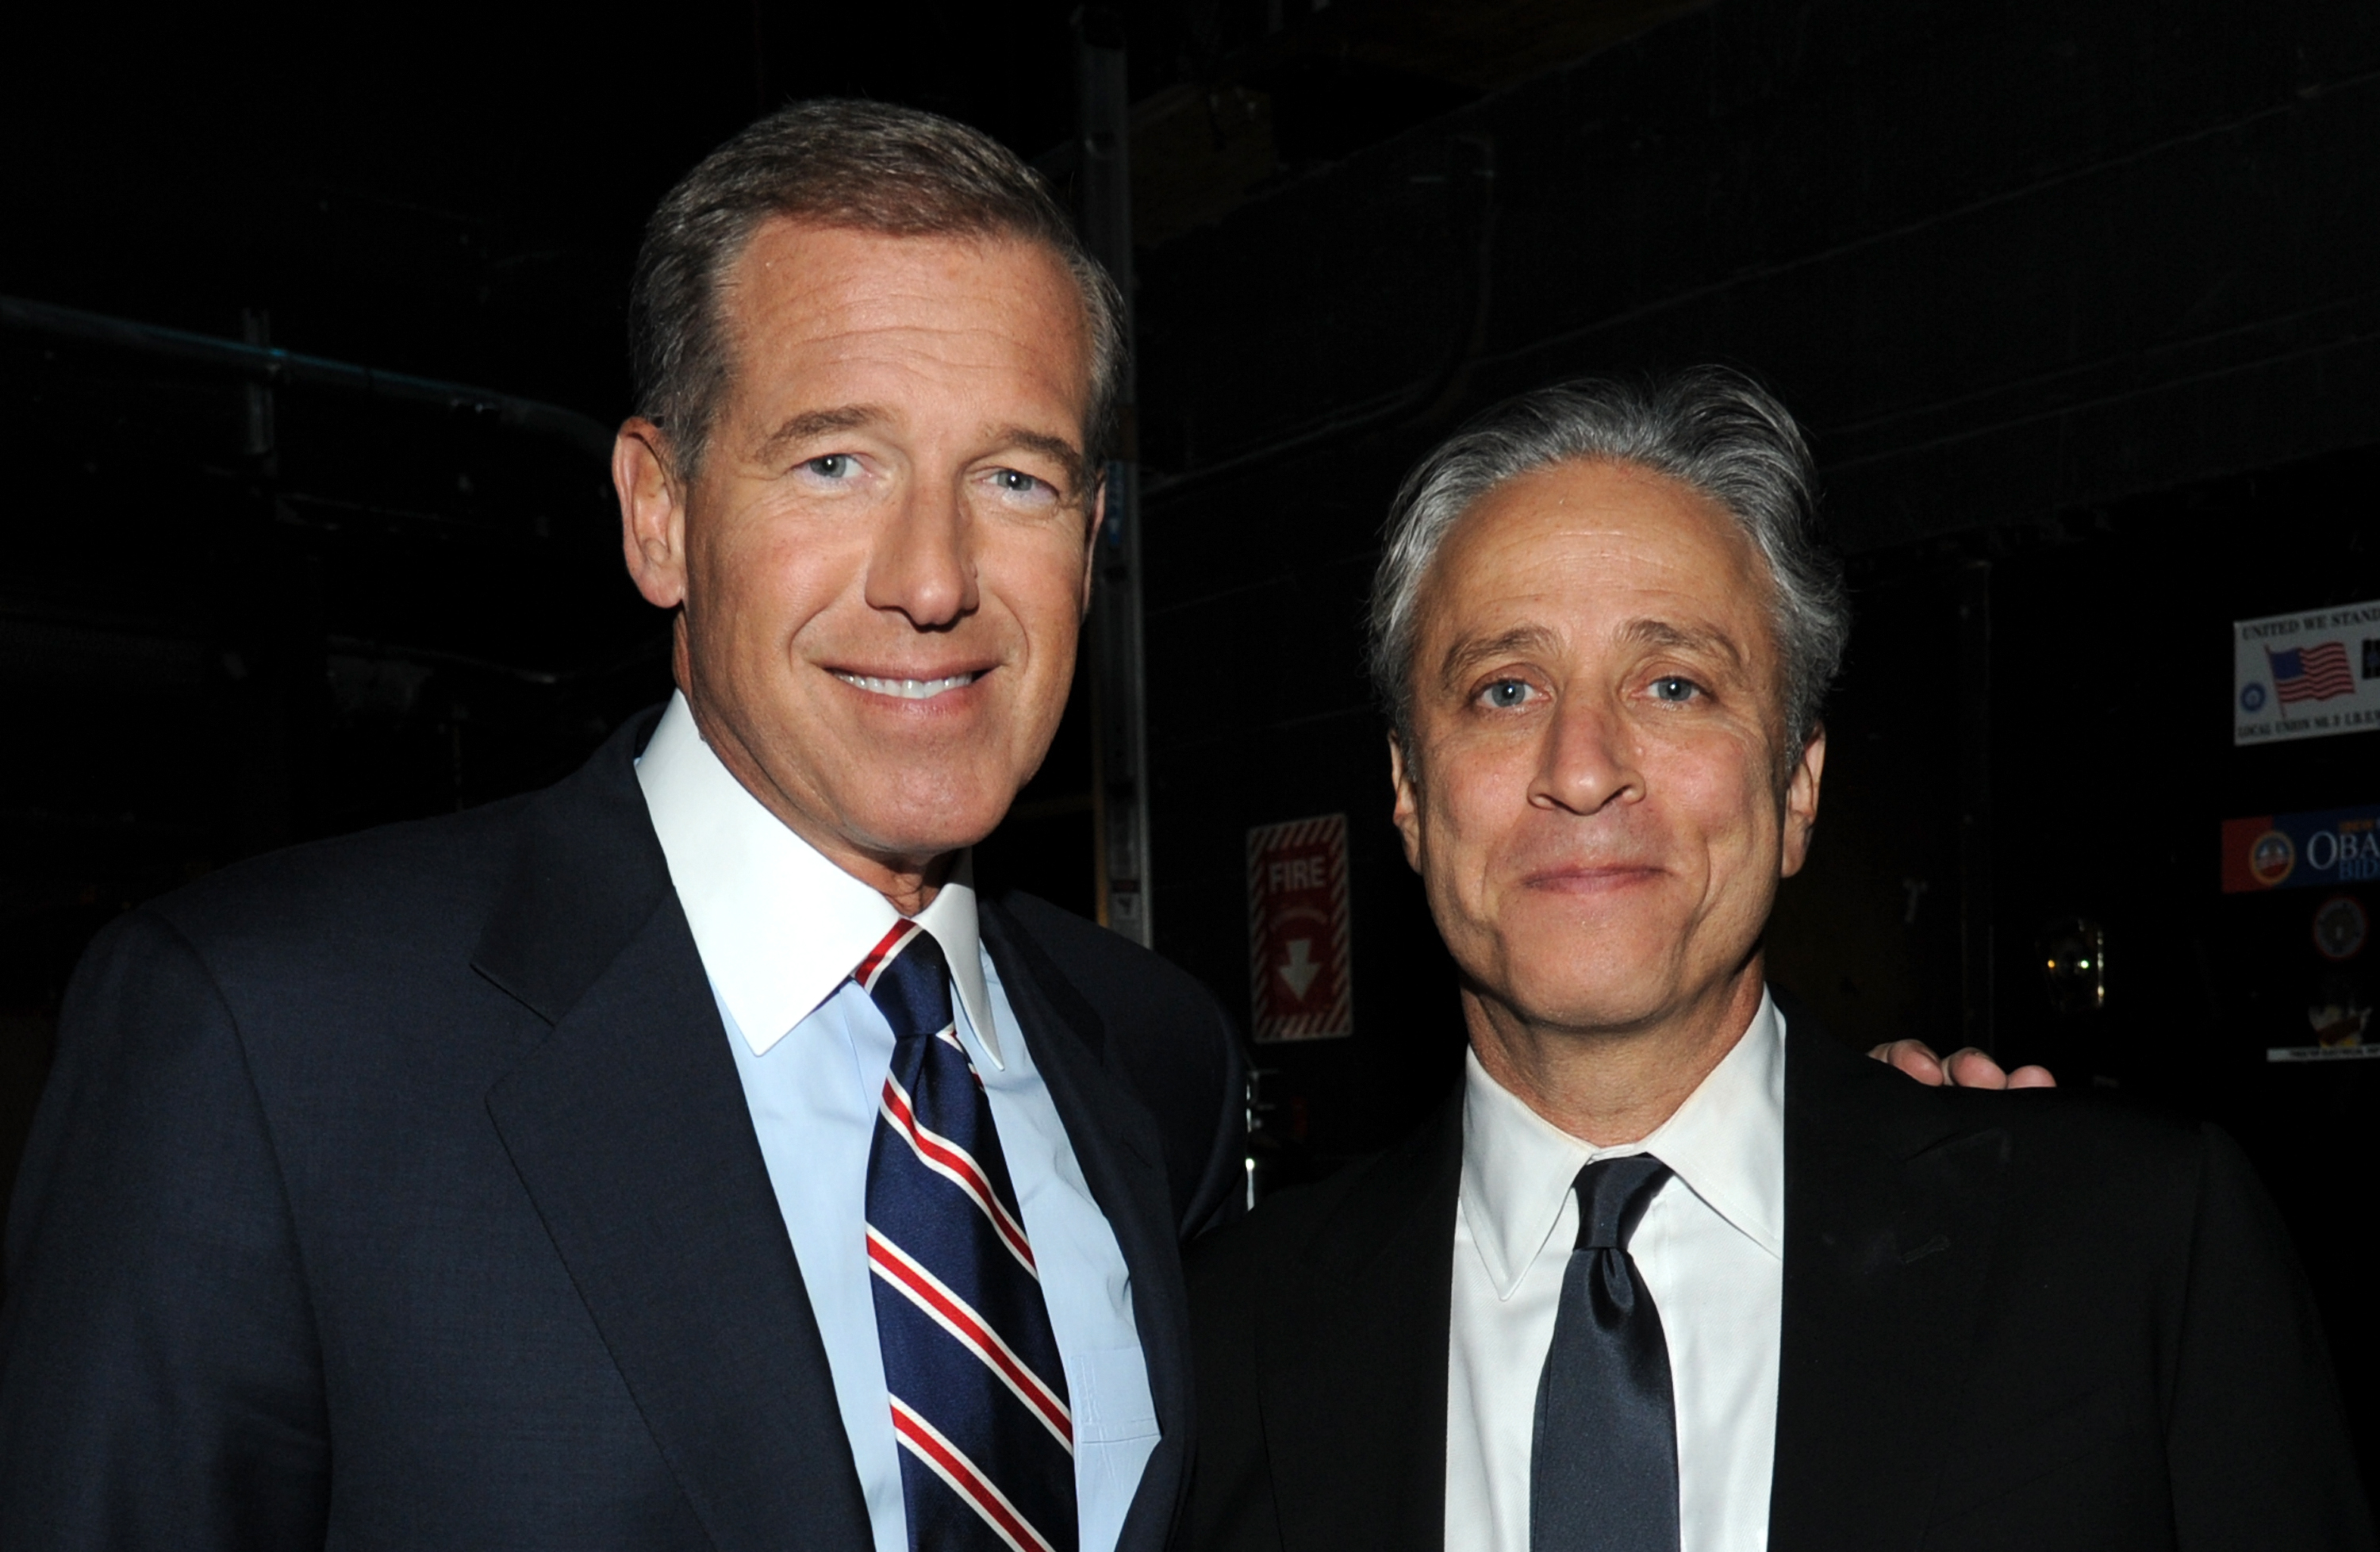 Brian Williams and Jon Stewart backstage at The New York Comedy Festival And The Bob Woodruff Foundation Present The 7th Annual Stand Up For Heroes Event at Madison Square Garden on Nov. 6, 2013 in New York City.